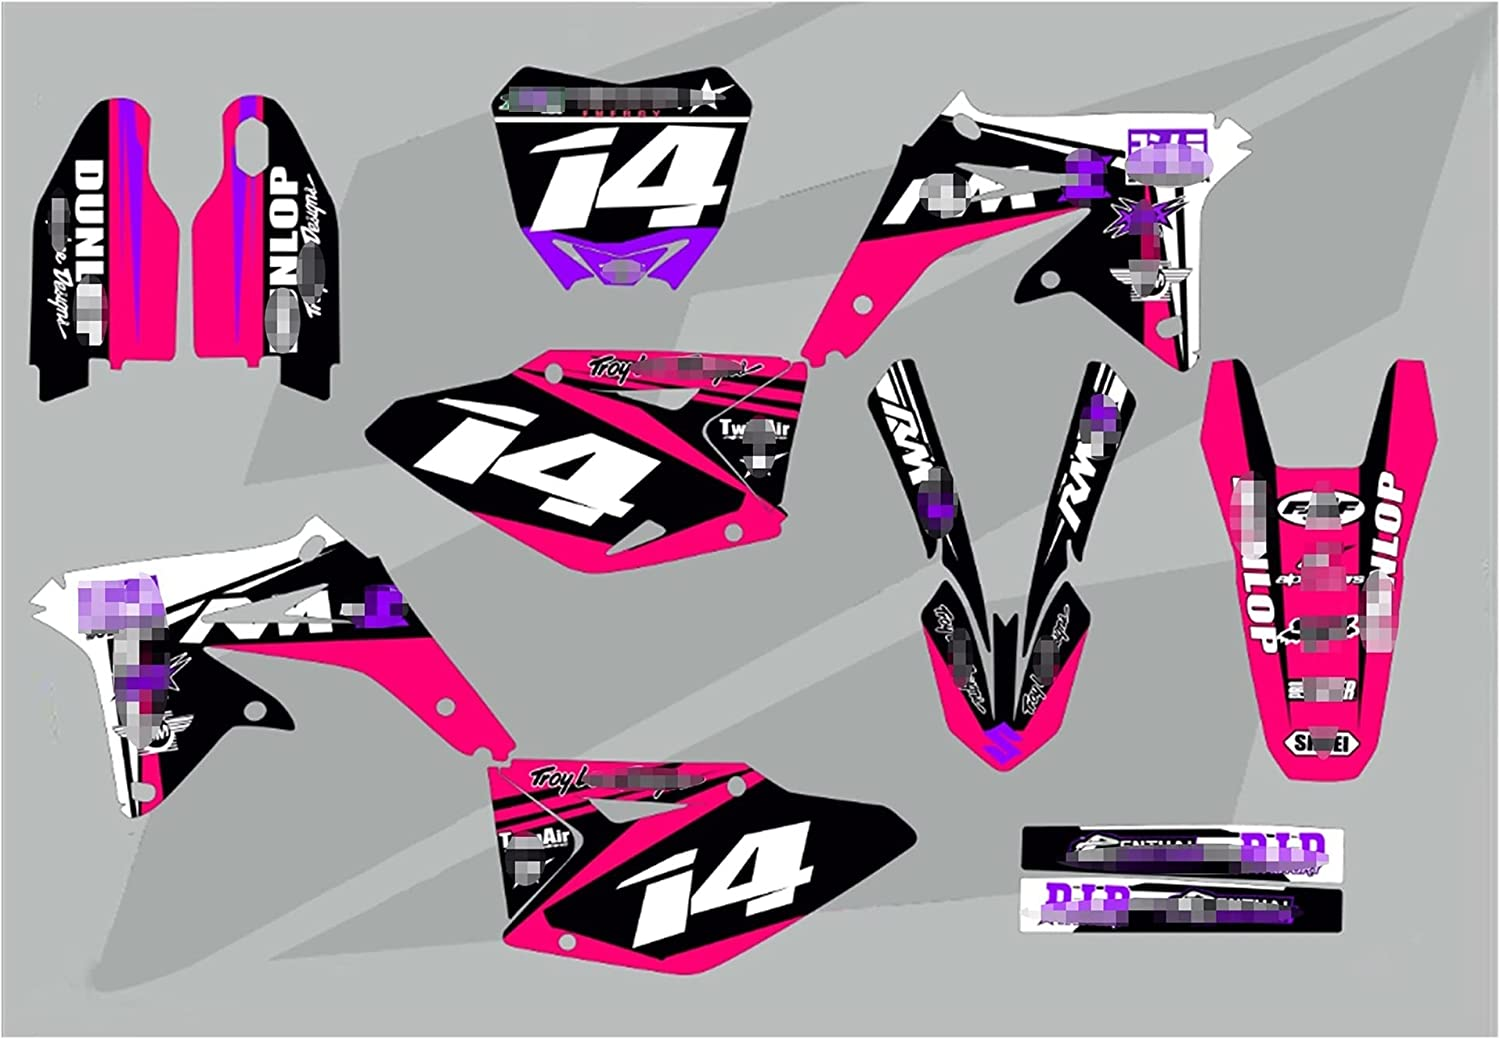 YHYPRESTER XYTZ64-5 Customized Louisville-Jefferson specialty shop County Mall 3M Gra Decals Stickers Motorcycle